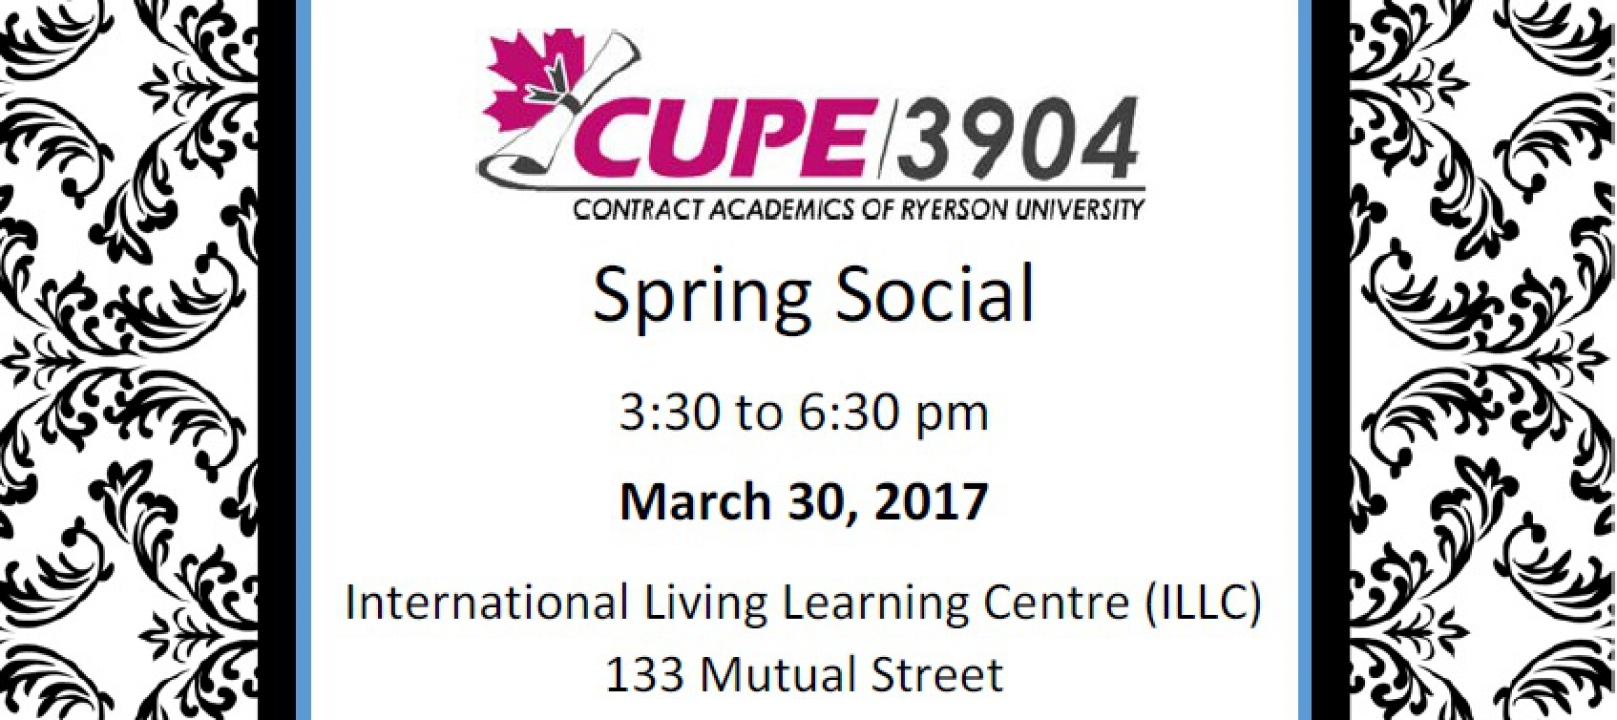 CUPE 3904 Spring Social (March 30, 2017)